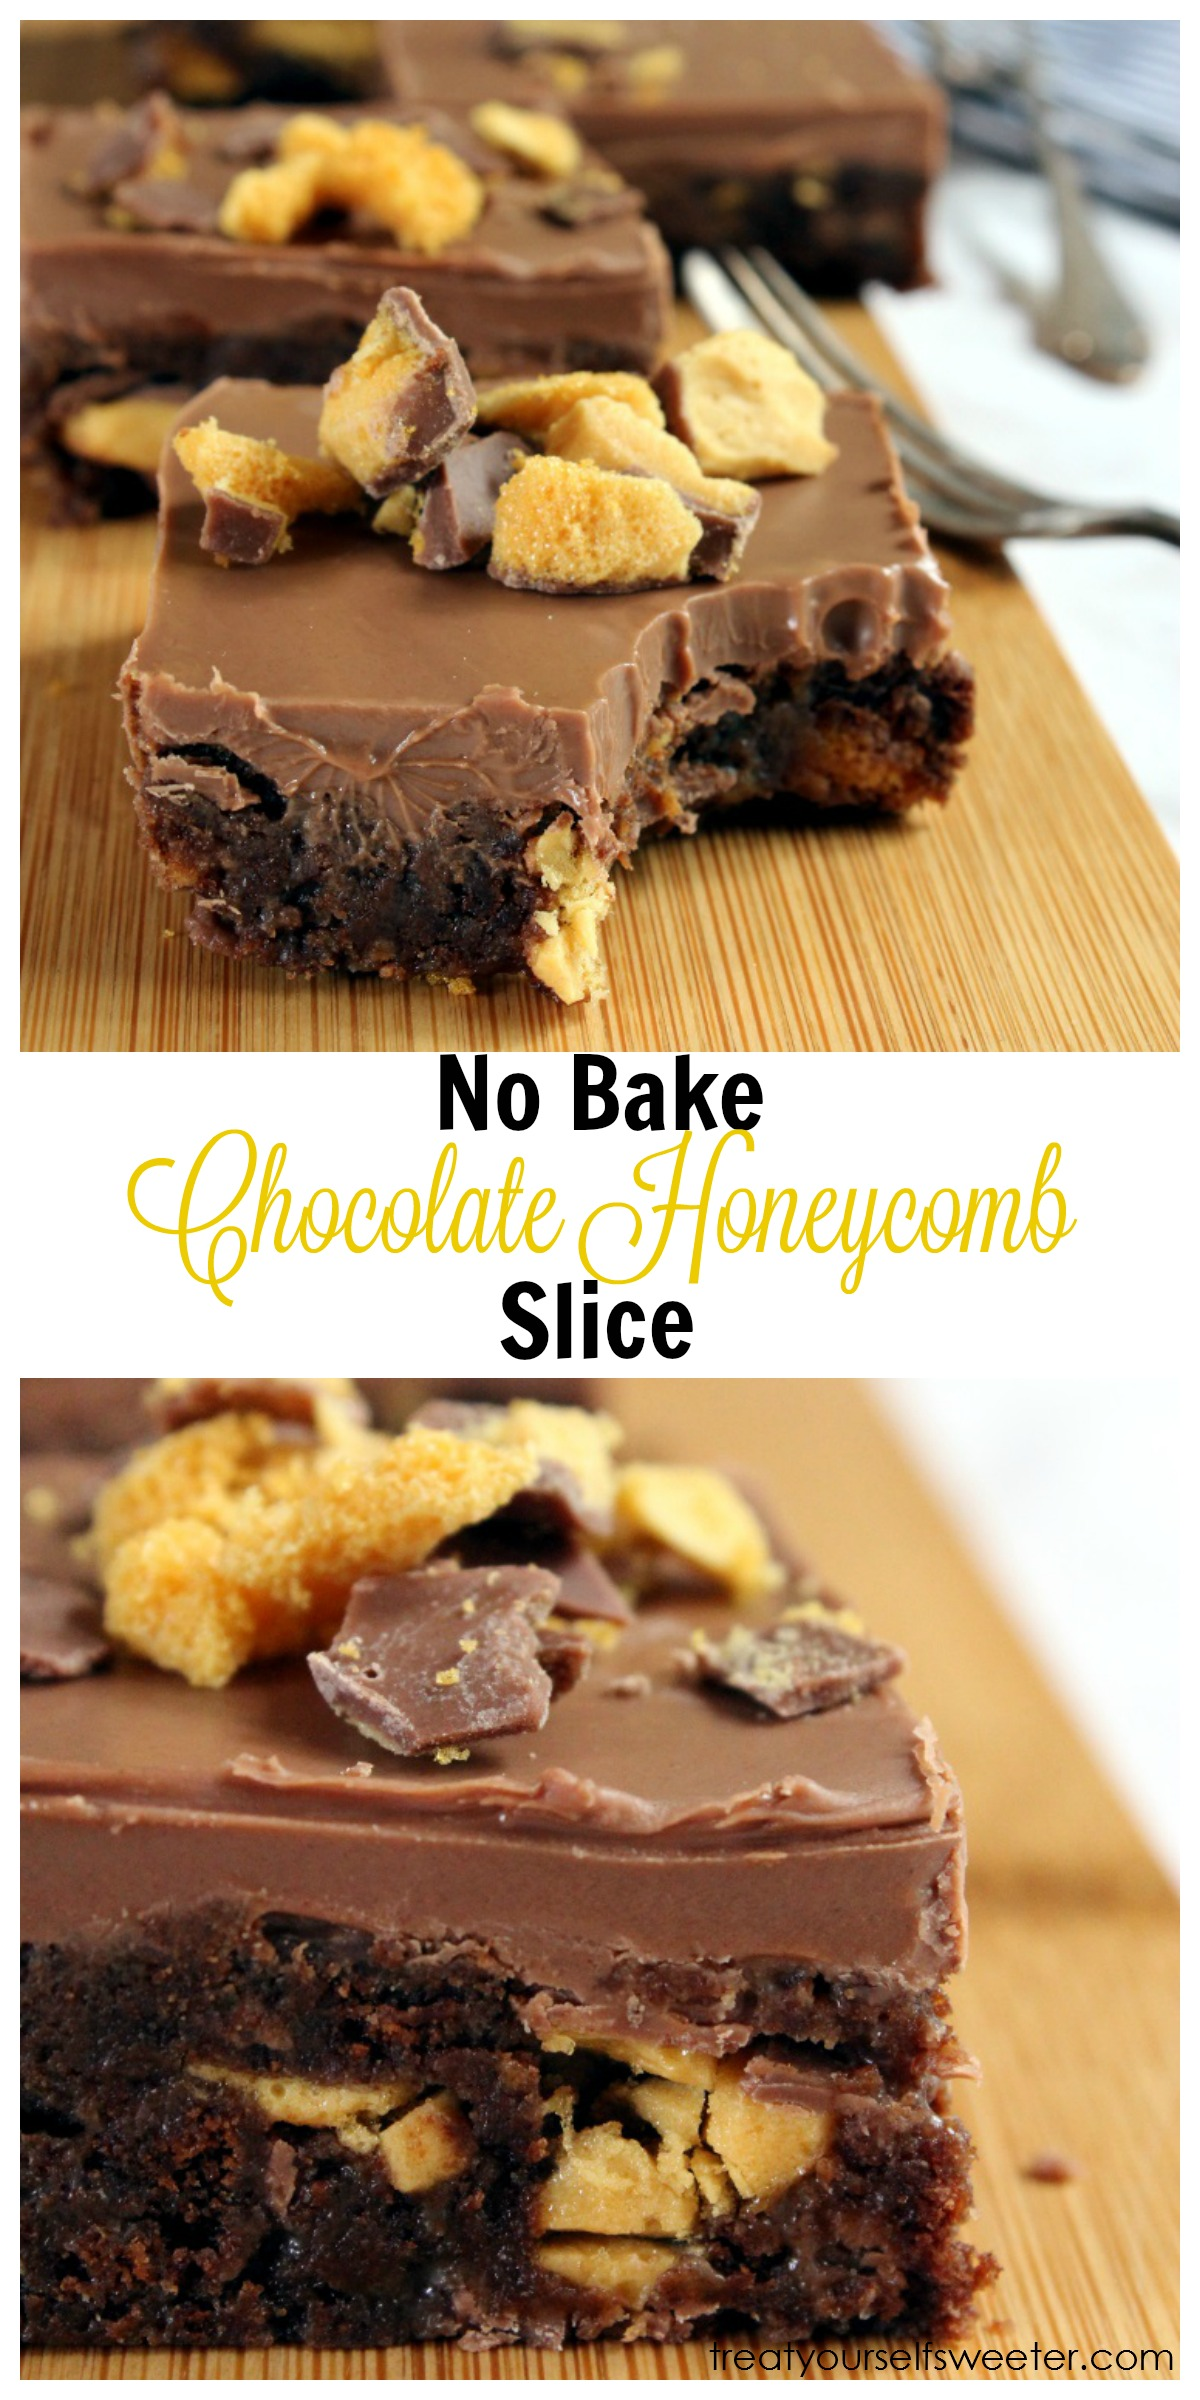 Chocolate Honeycomb Slice Pinterest 1 (1)